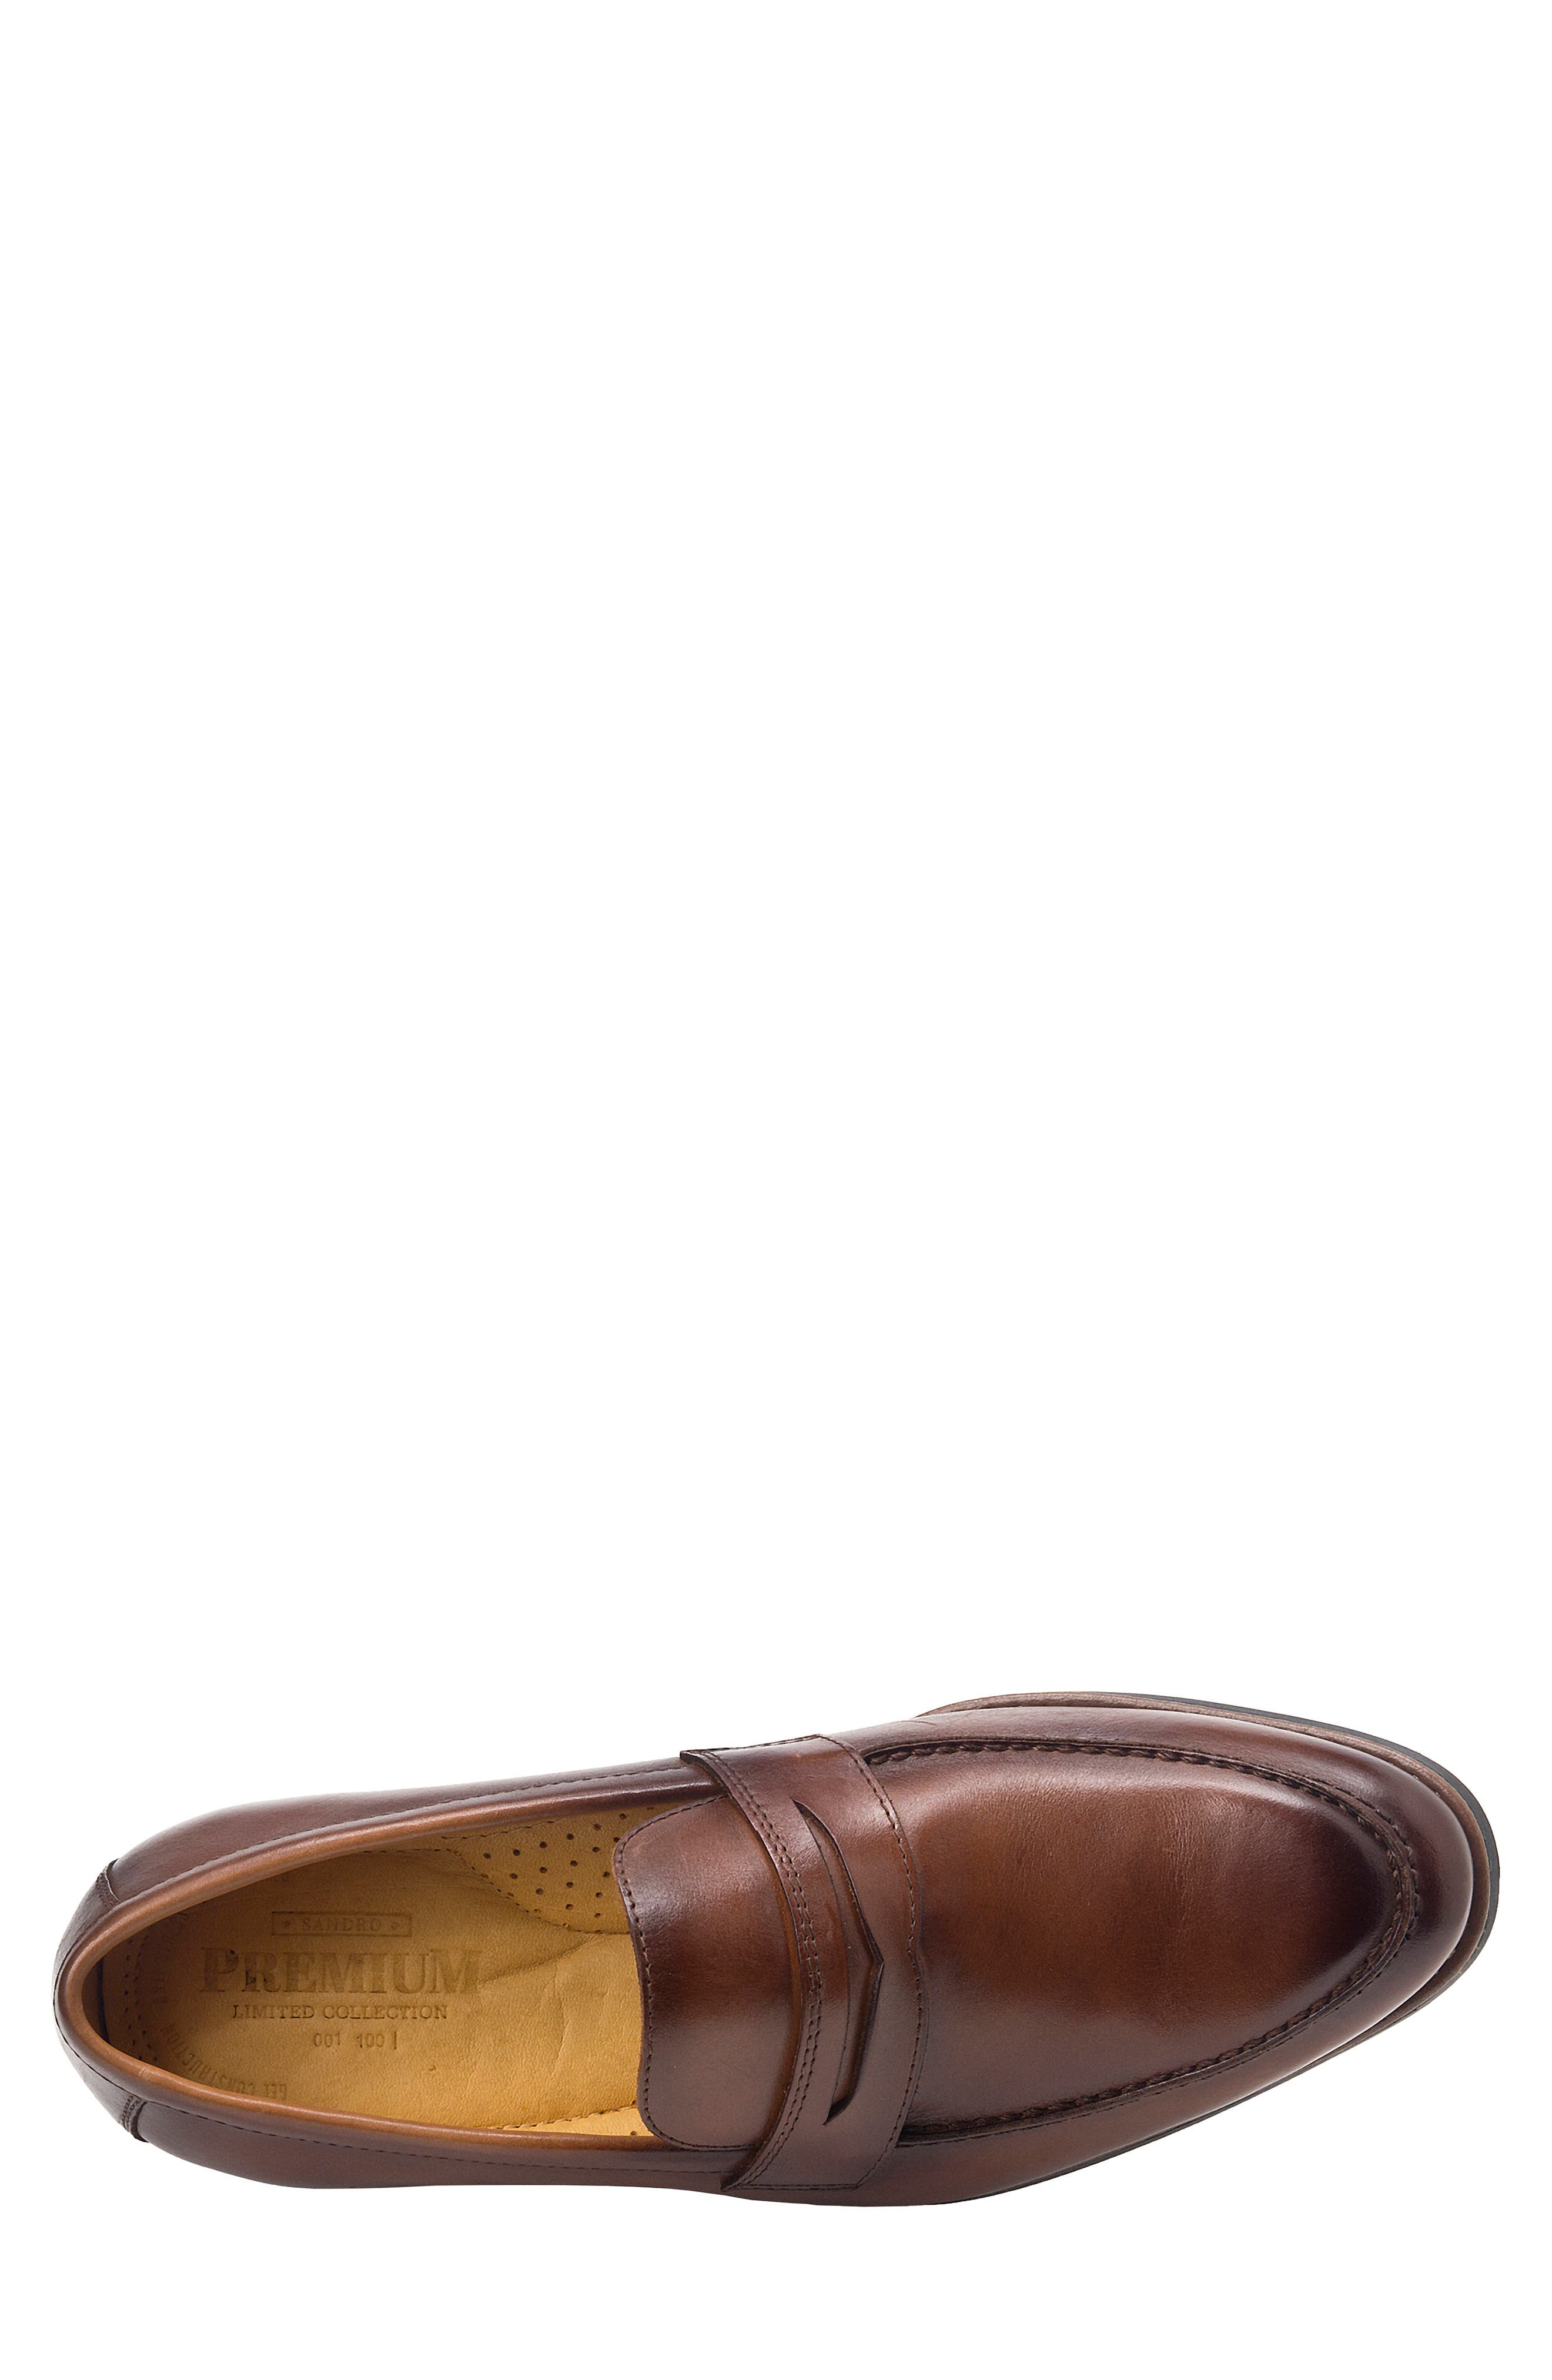 Mundo Penny Loafer,                             Alternate thumbnail 5, color,                             BROWN LEATHER